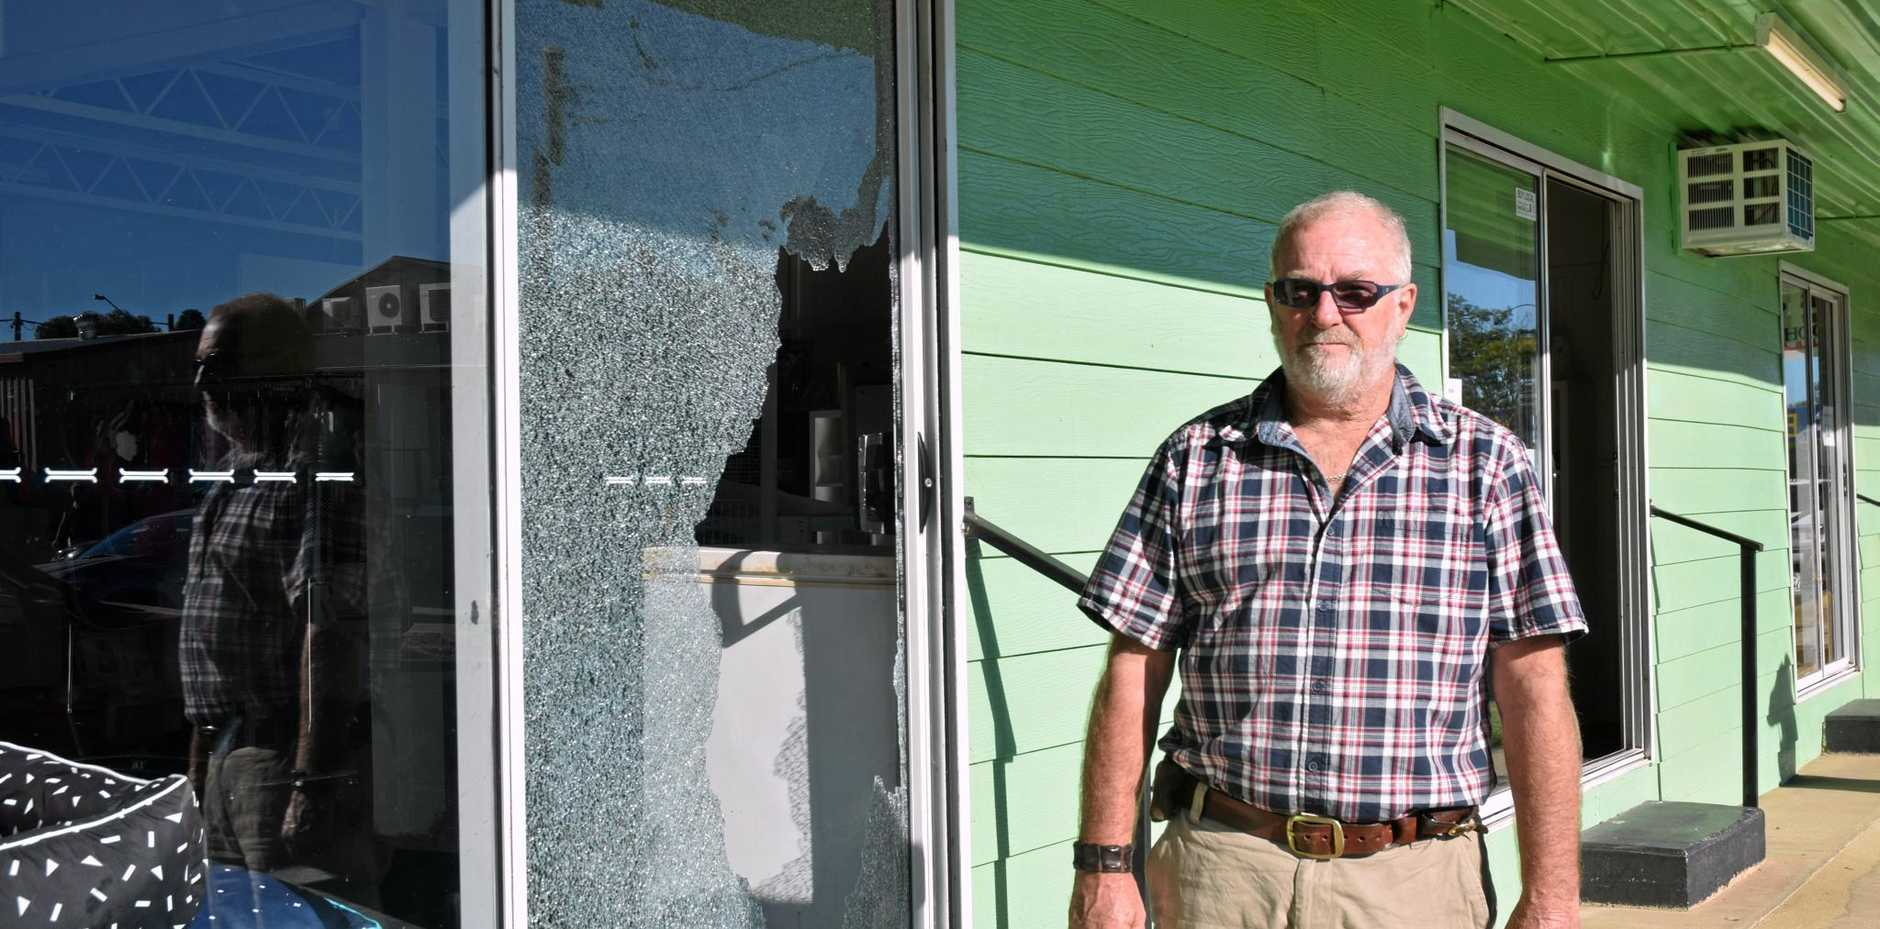 Bob Budgen's business Bob's Pet Supplies in chinchilla was broken into on Sunday night.